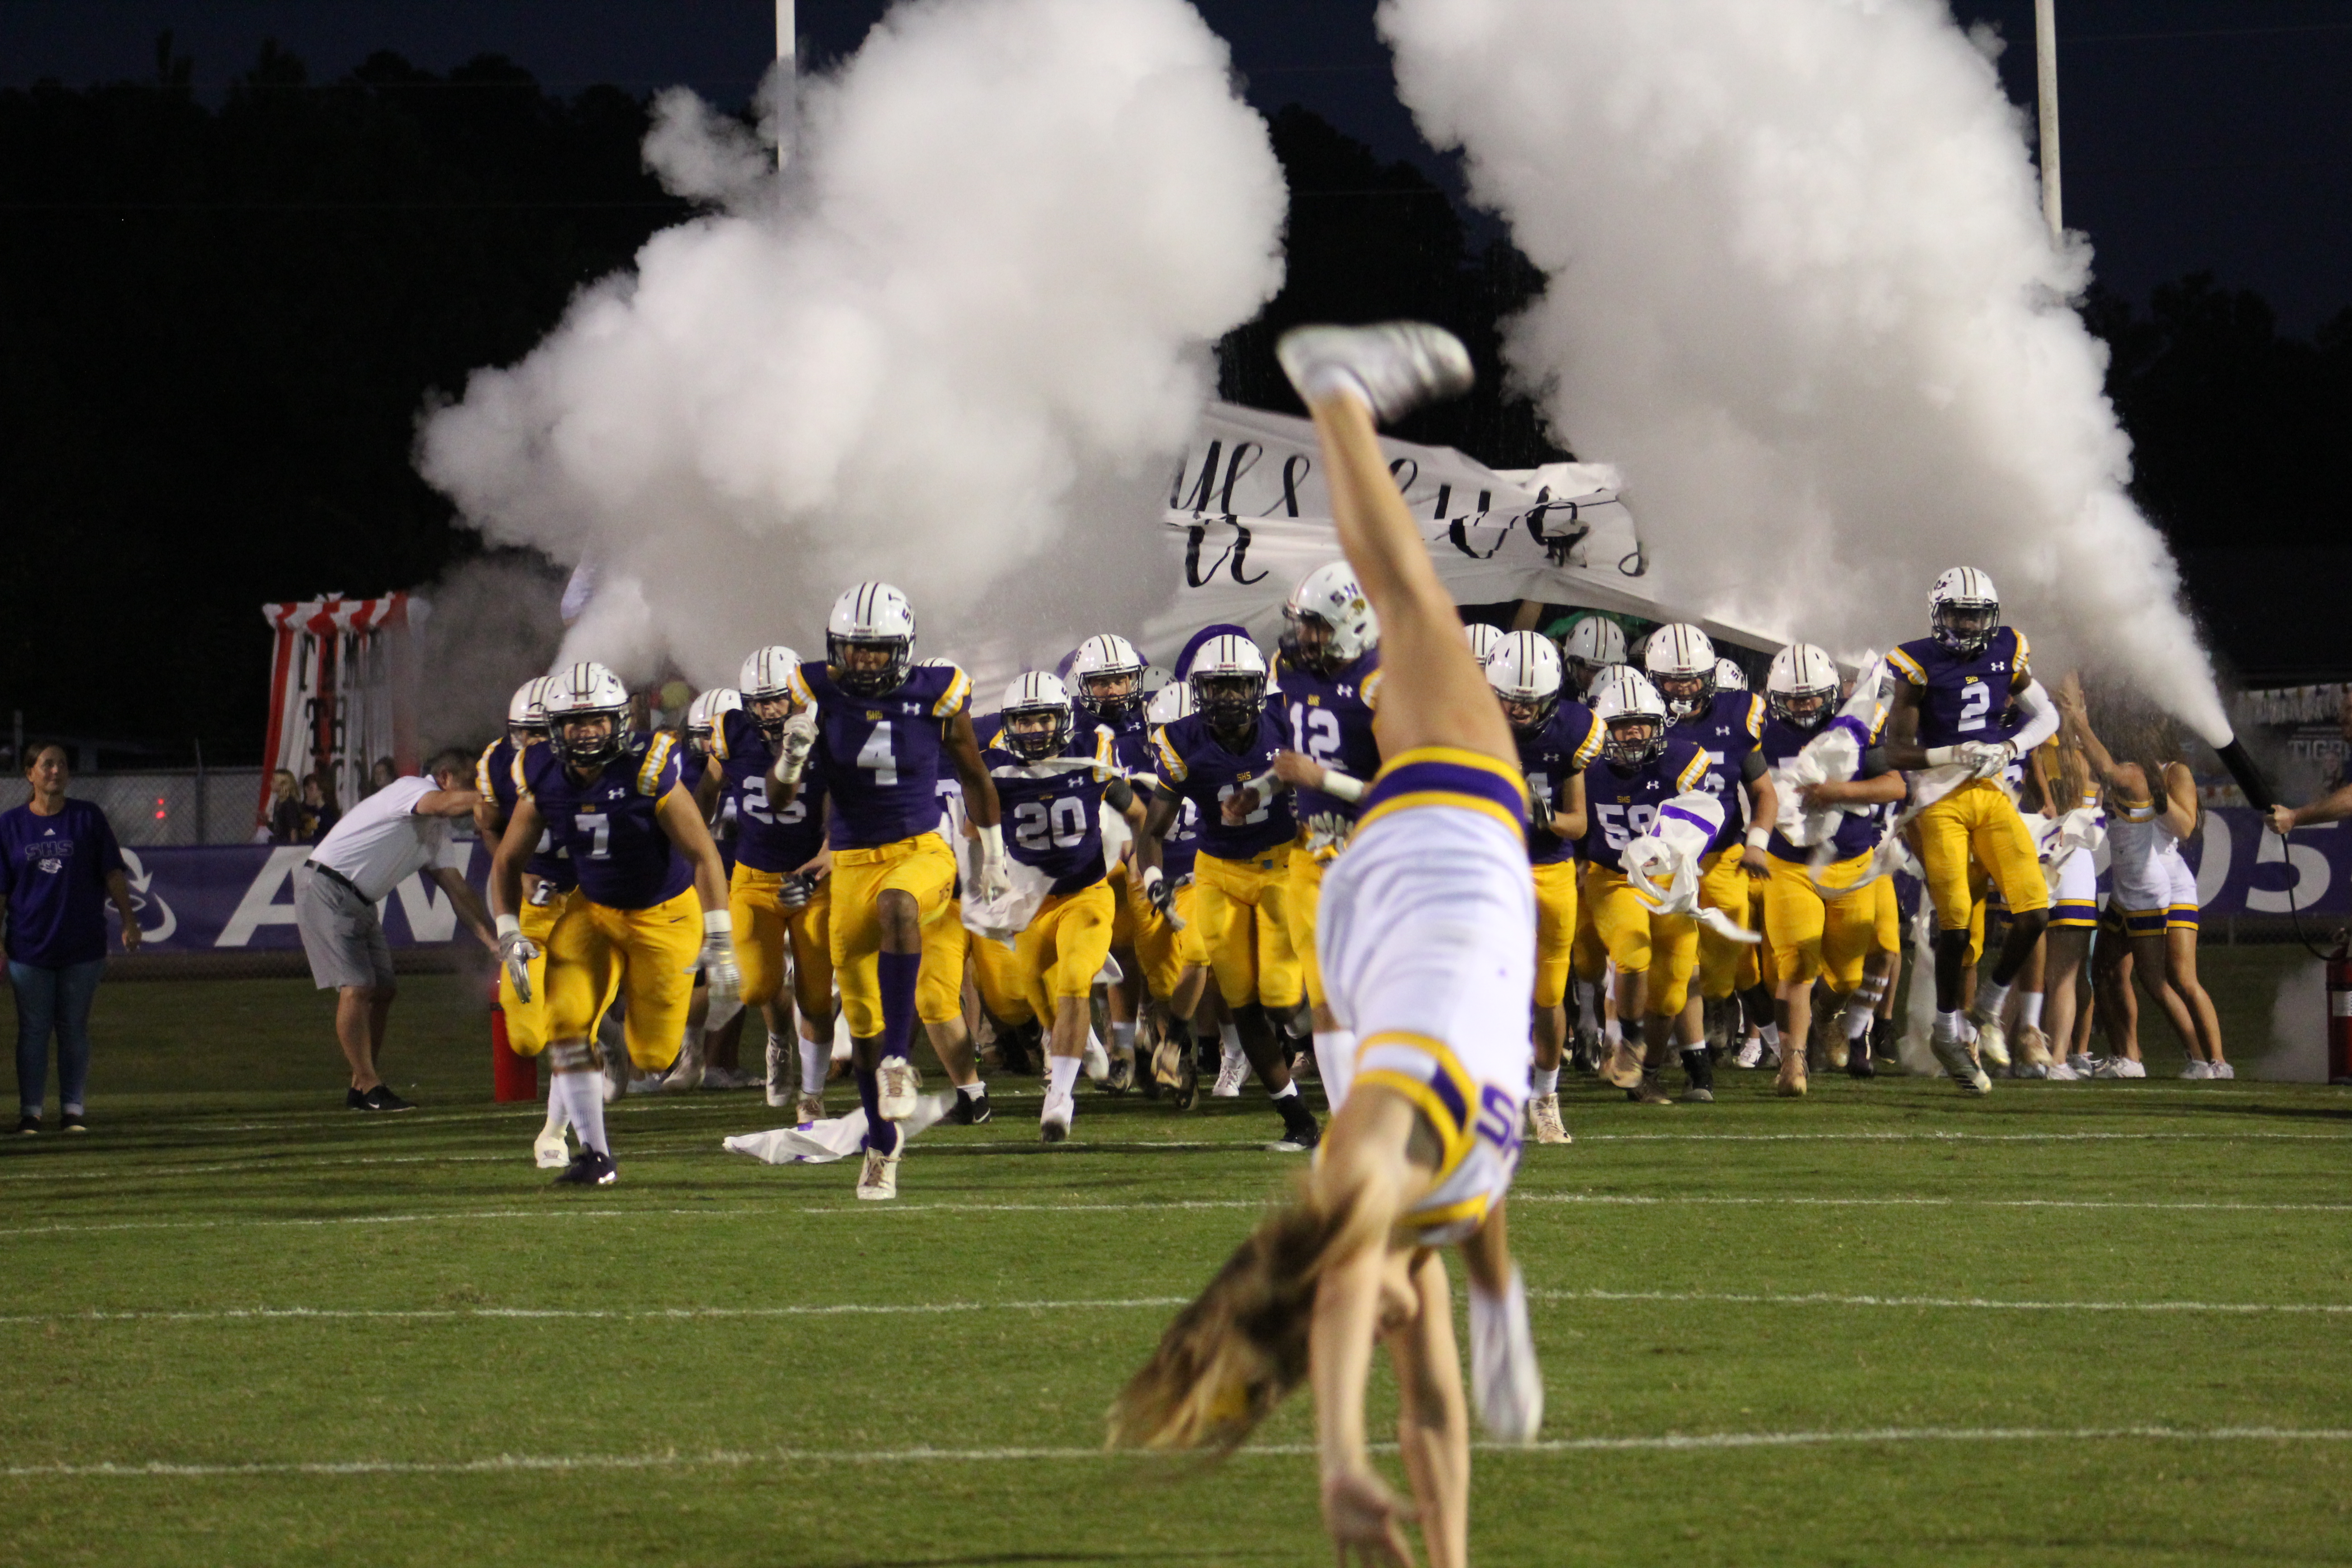 Springville earns huge 43-14 homecoming win over Crossville